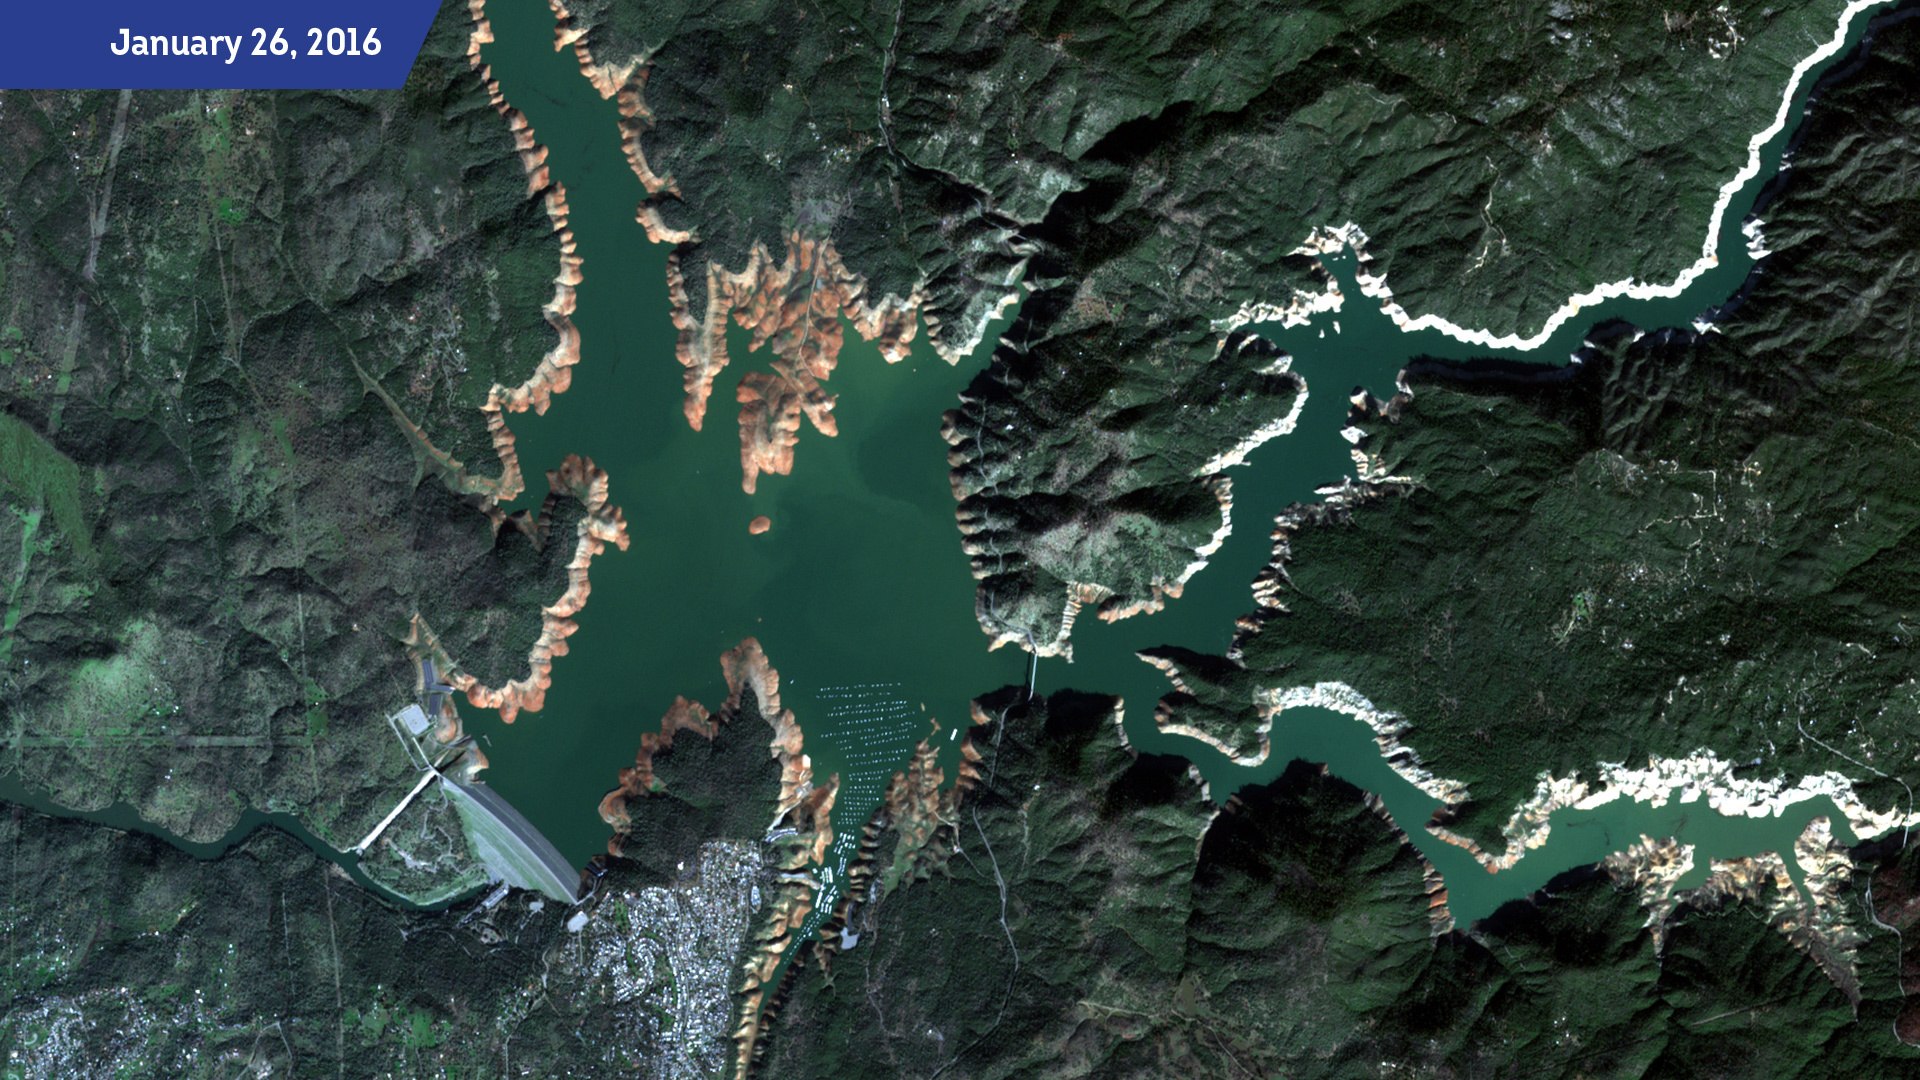 Oroville Dam as Seen from Space: Amazing Timelapse Satellite Imagery